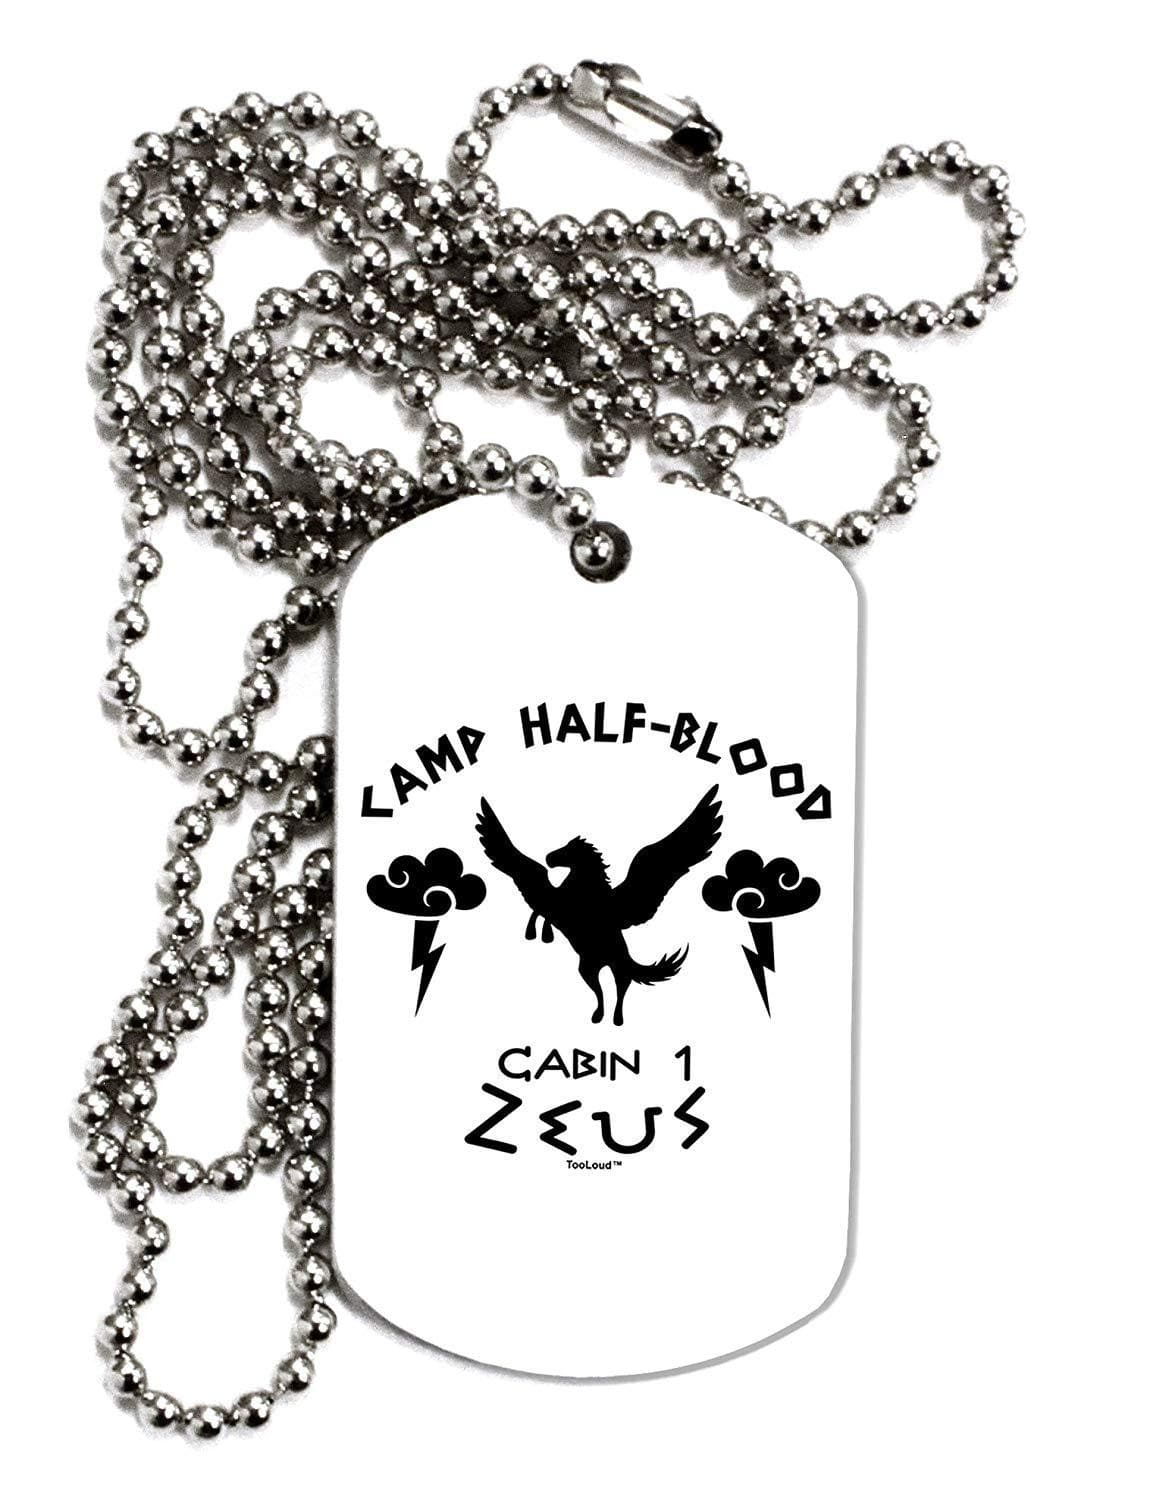 TooLoud Camp Half Blood Cabin 1 Zeus Adult Dog Tag Chain Necklace